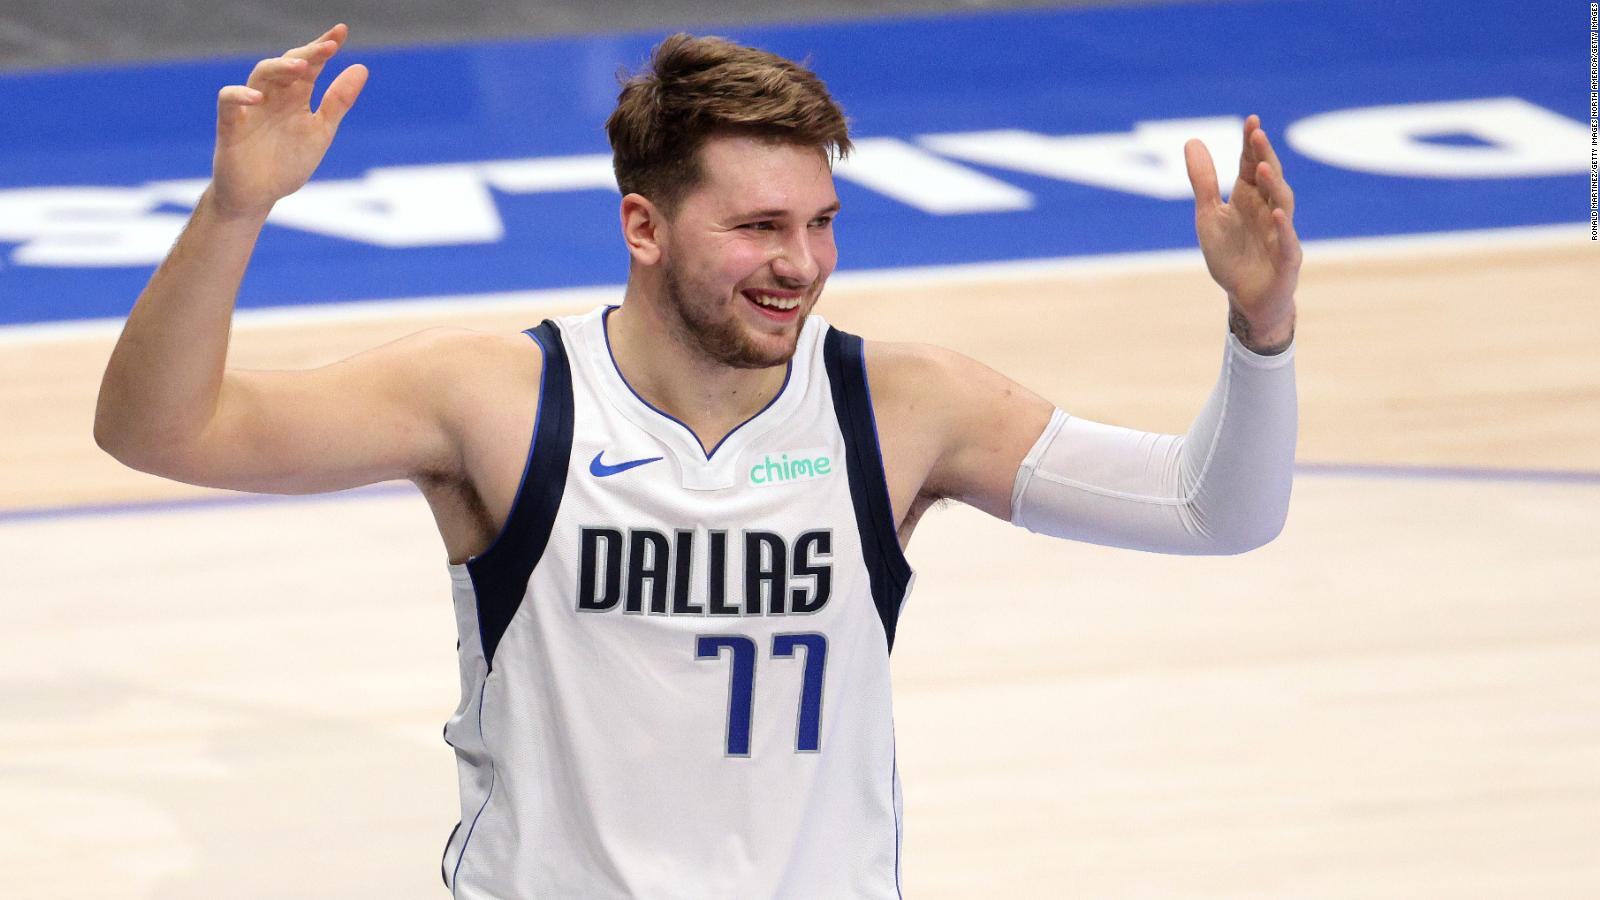 NBA: Luka Doncic creates another piece of history as he outbattles James  Harden - CNN